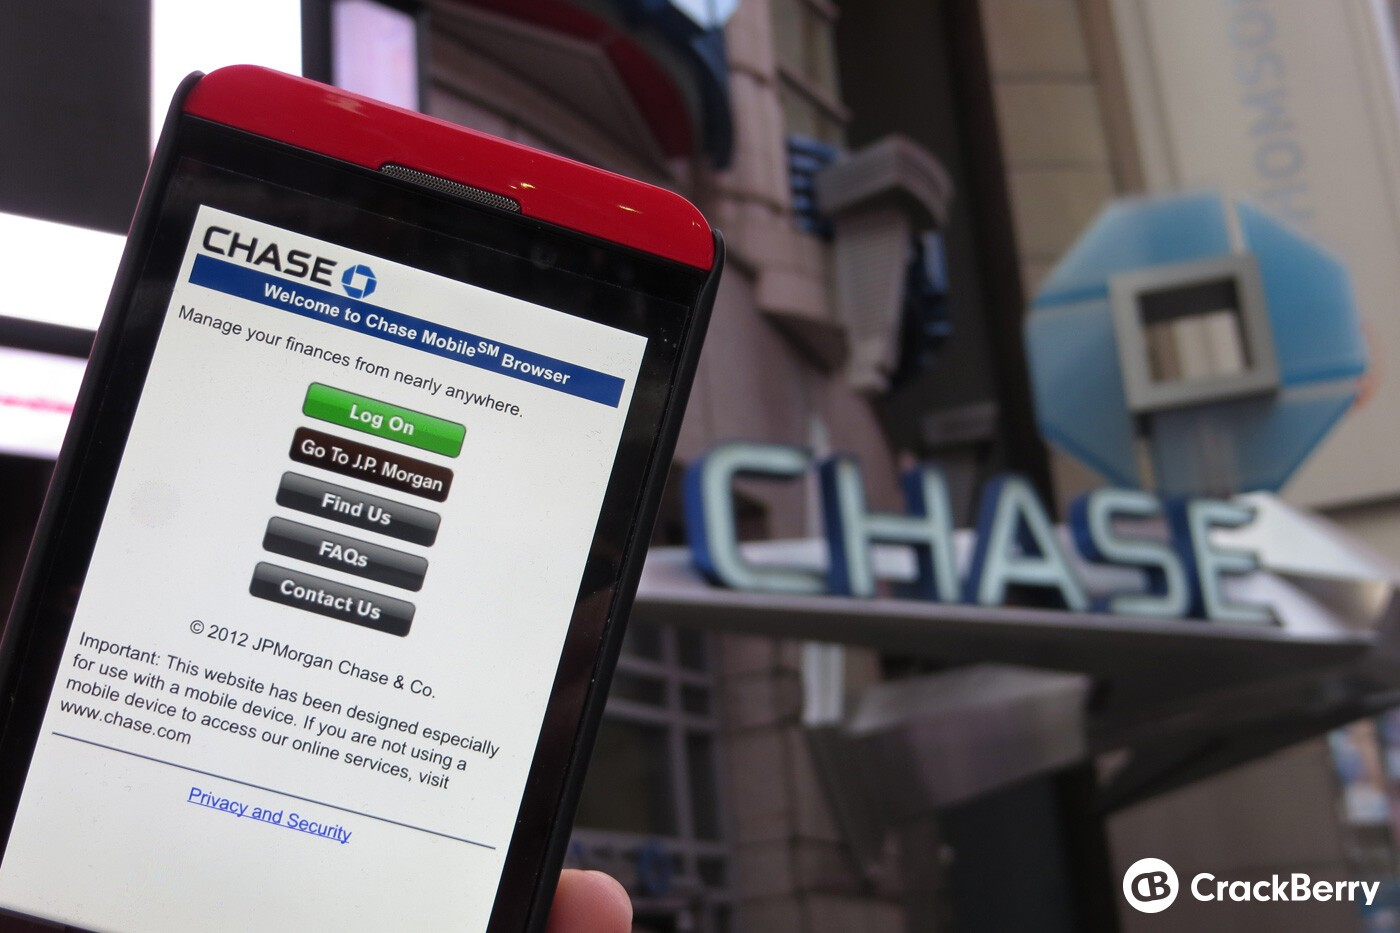 Chase Bank Will Cease Offering Their Blackberry Mobile Application